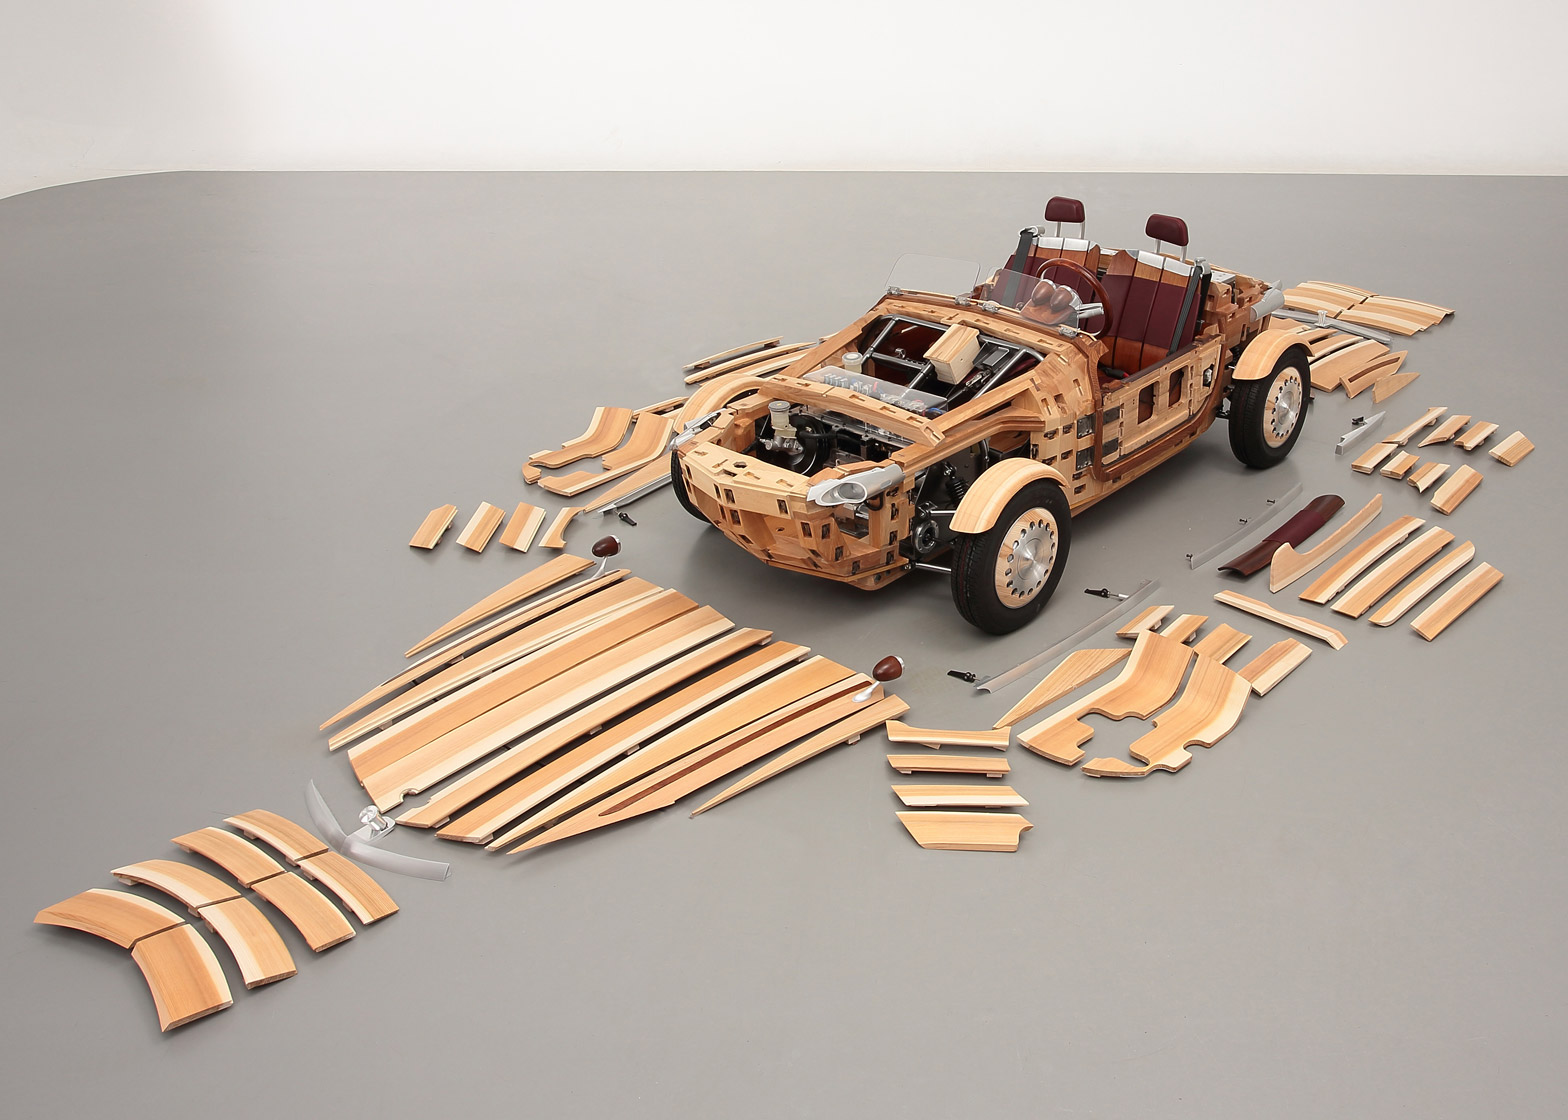 Wooden Toyota Setsuna concept car for Milan design week 2016